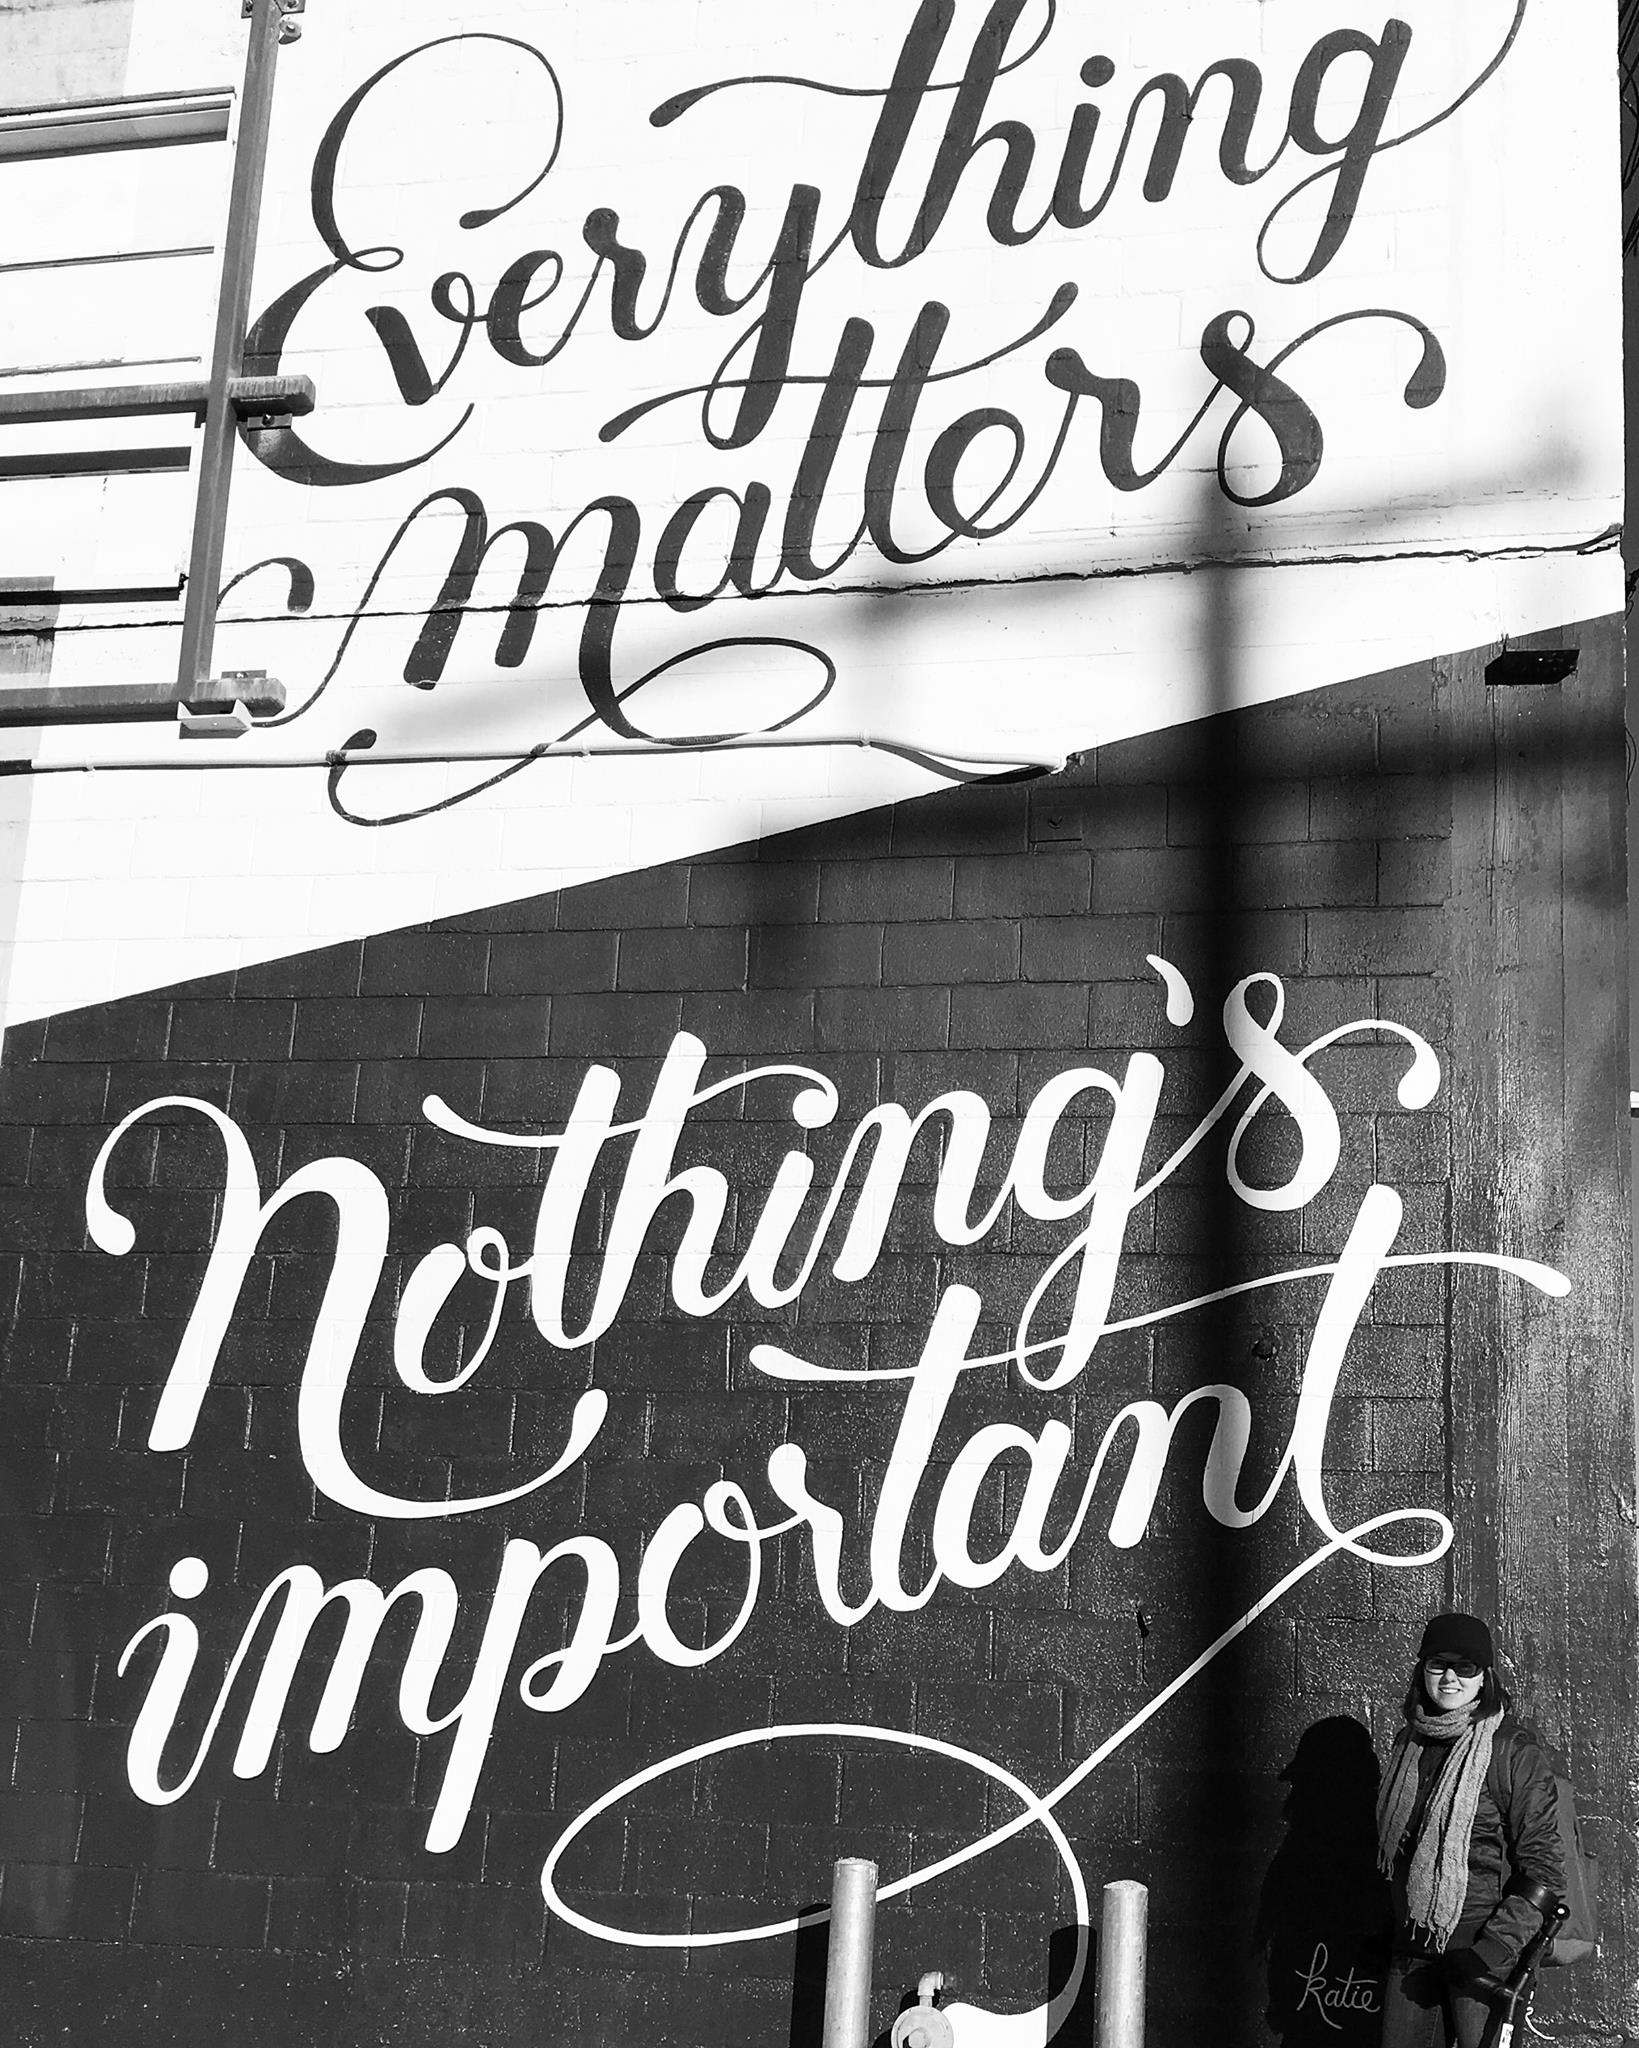 wall that says everything matters, nothing's important